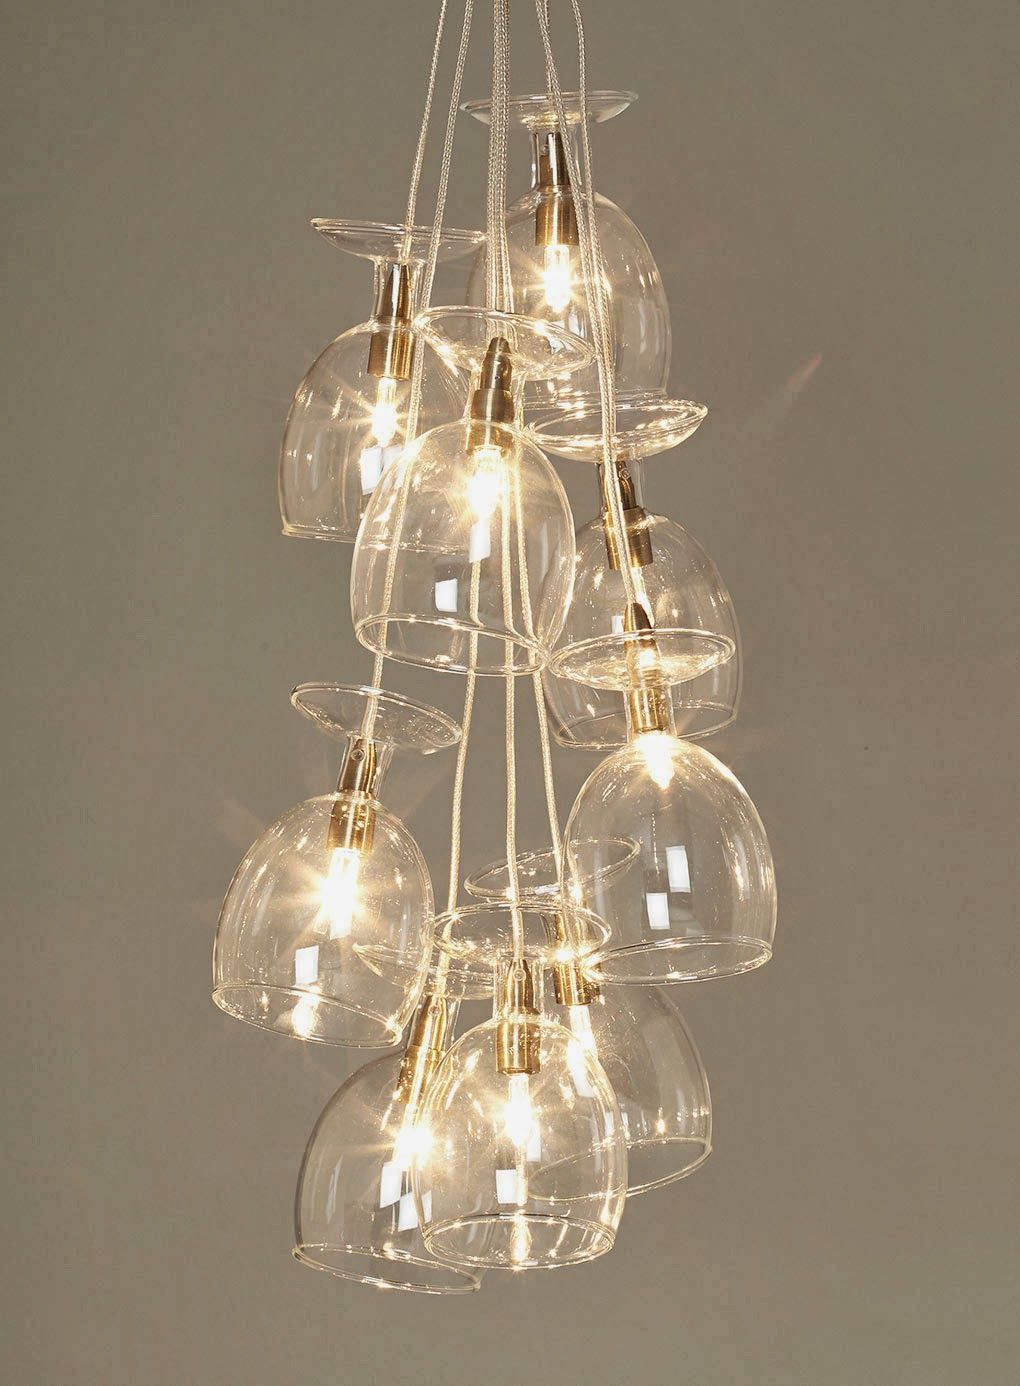 Wine glass light fitting